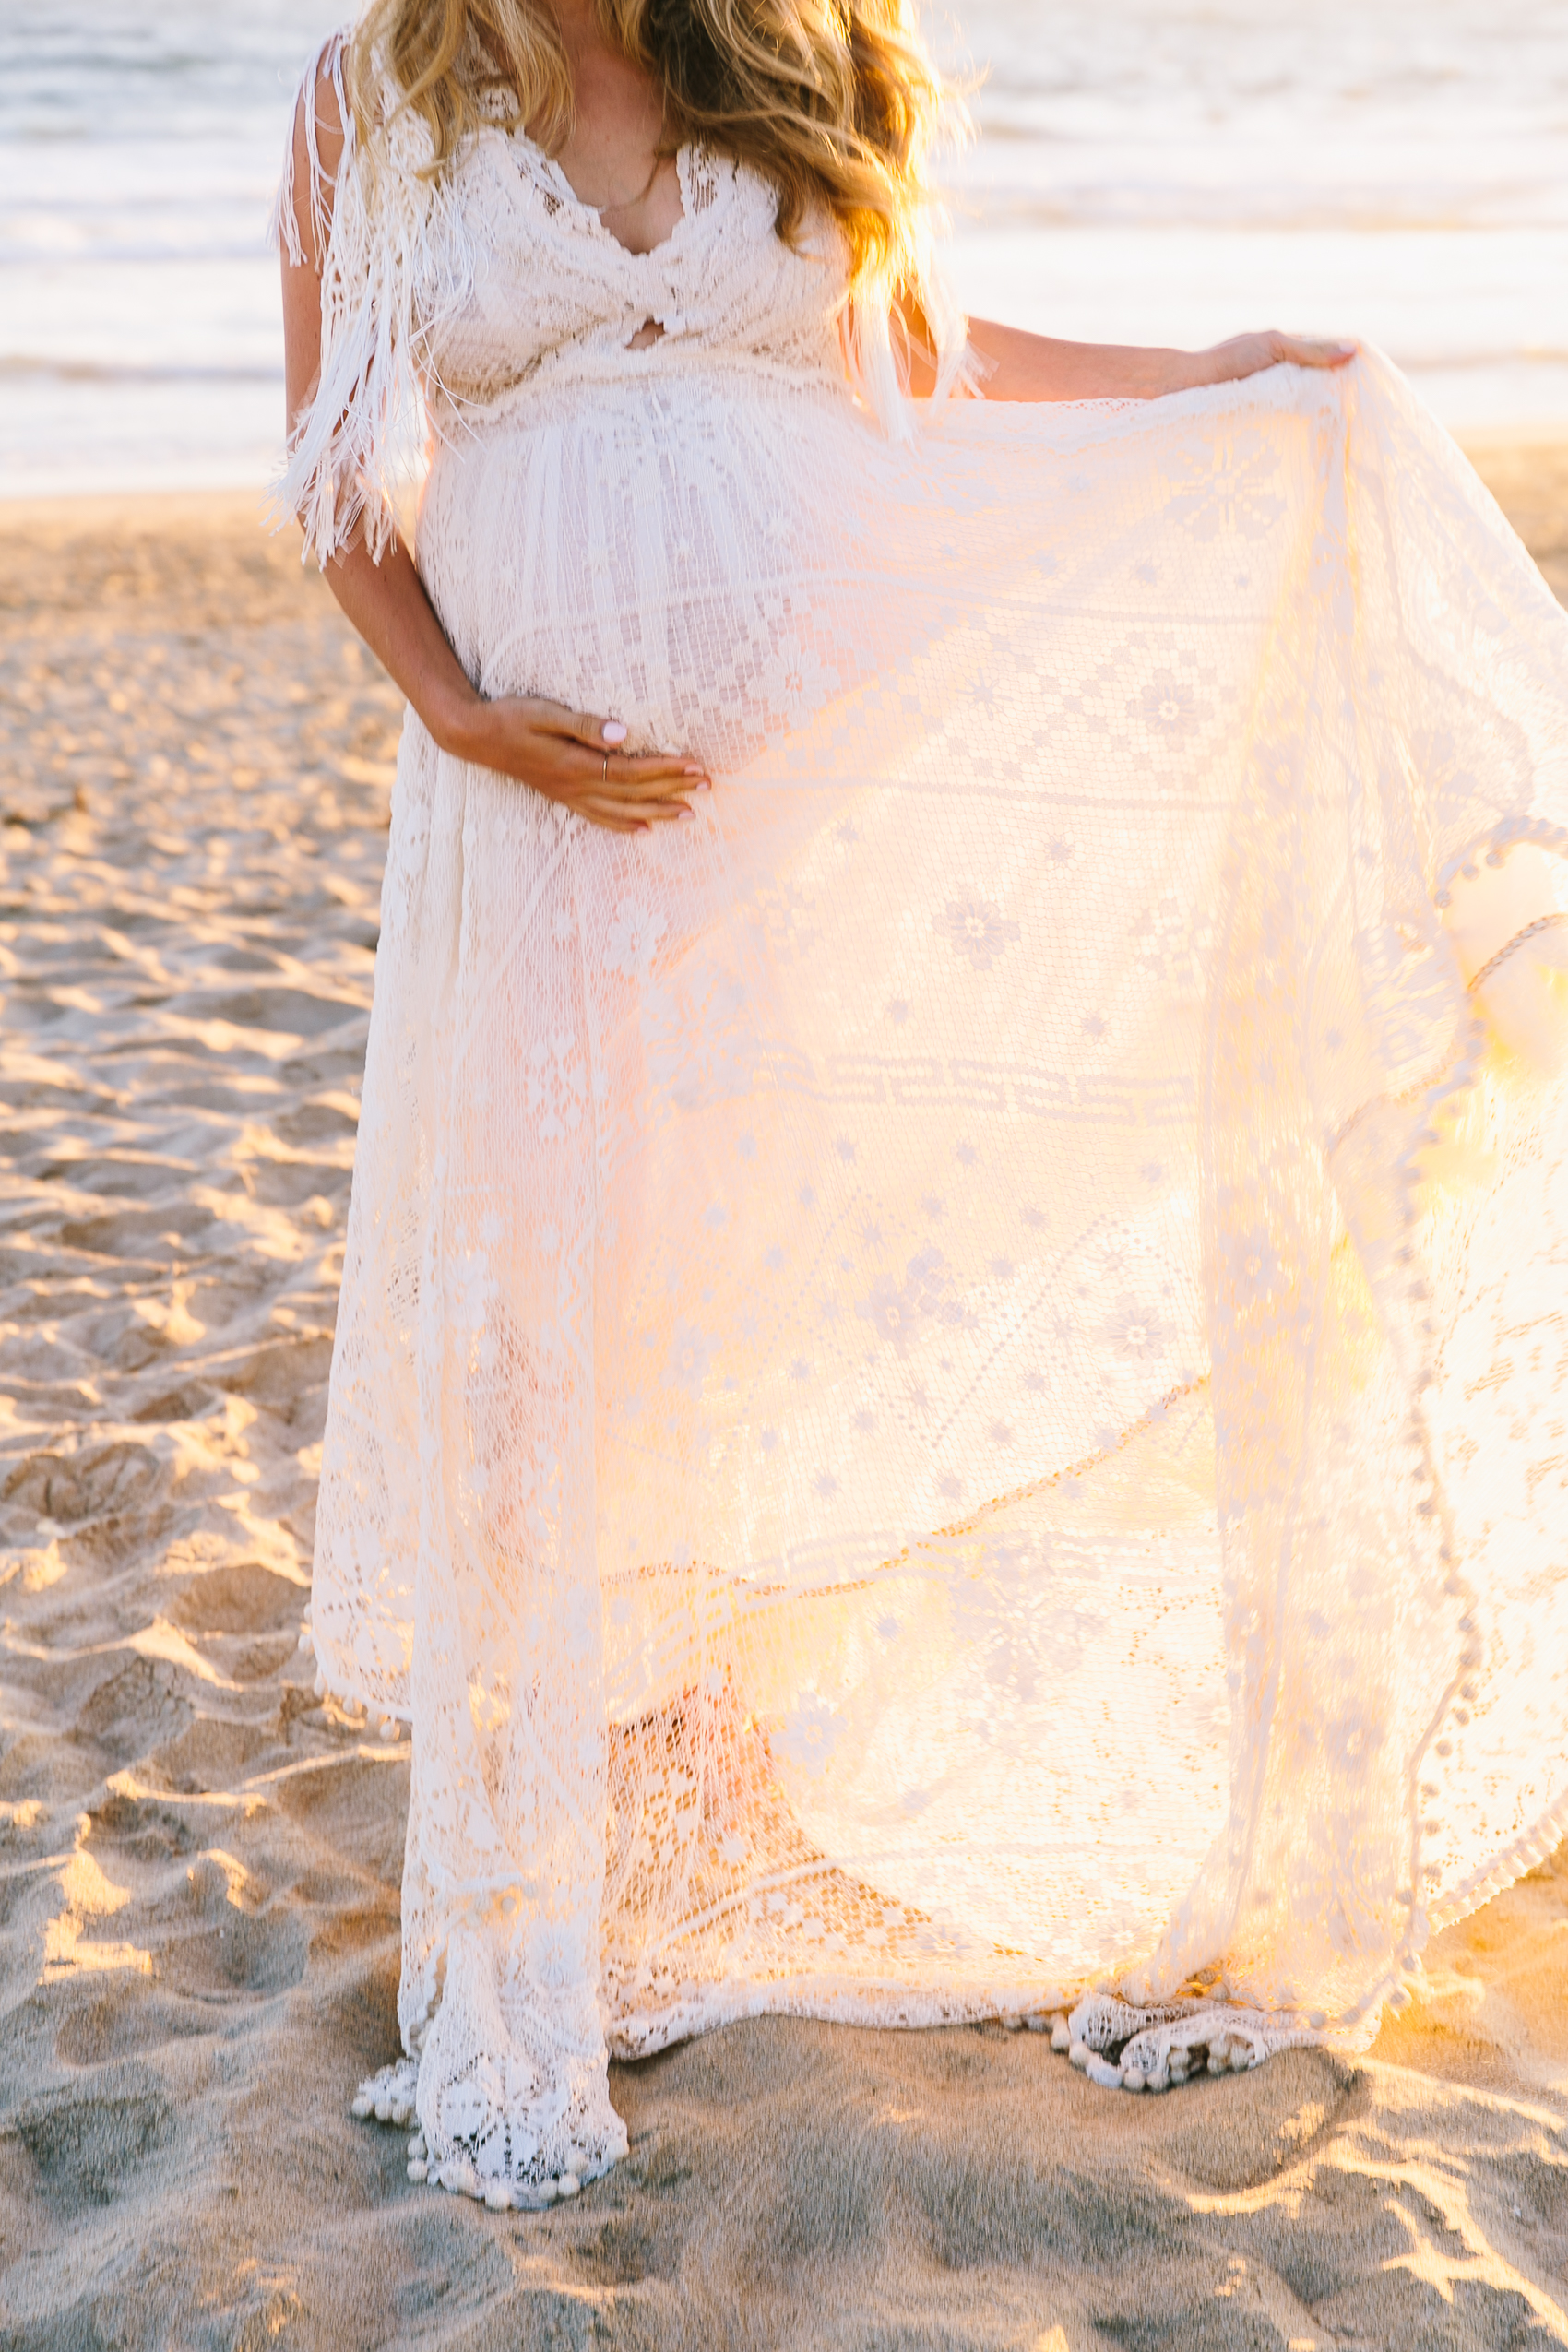 Los_Angeles_Family_Photographer_Maternity_Photos_Baby_Pregnancy_Venice_Beach_Golden_Hour-0945.jpg